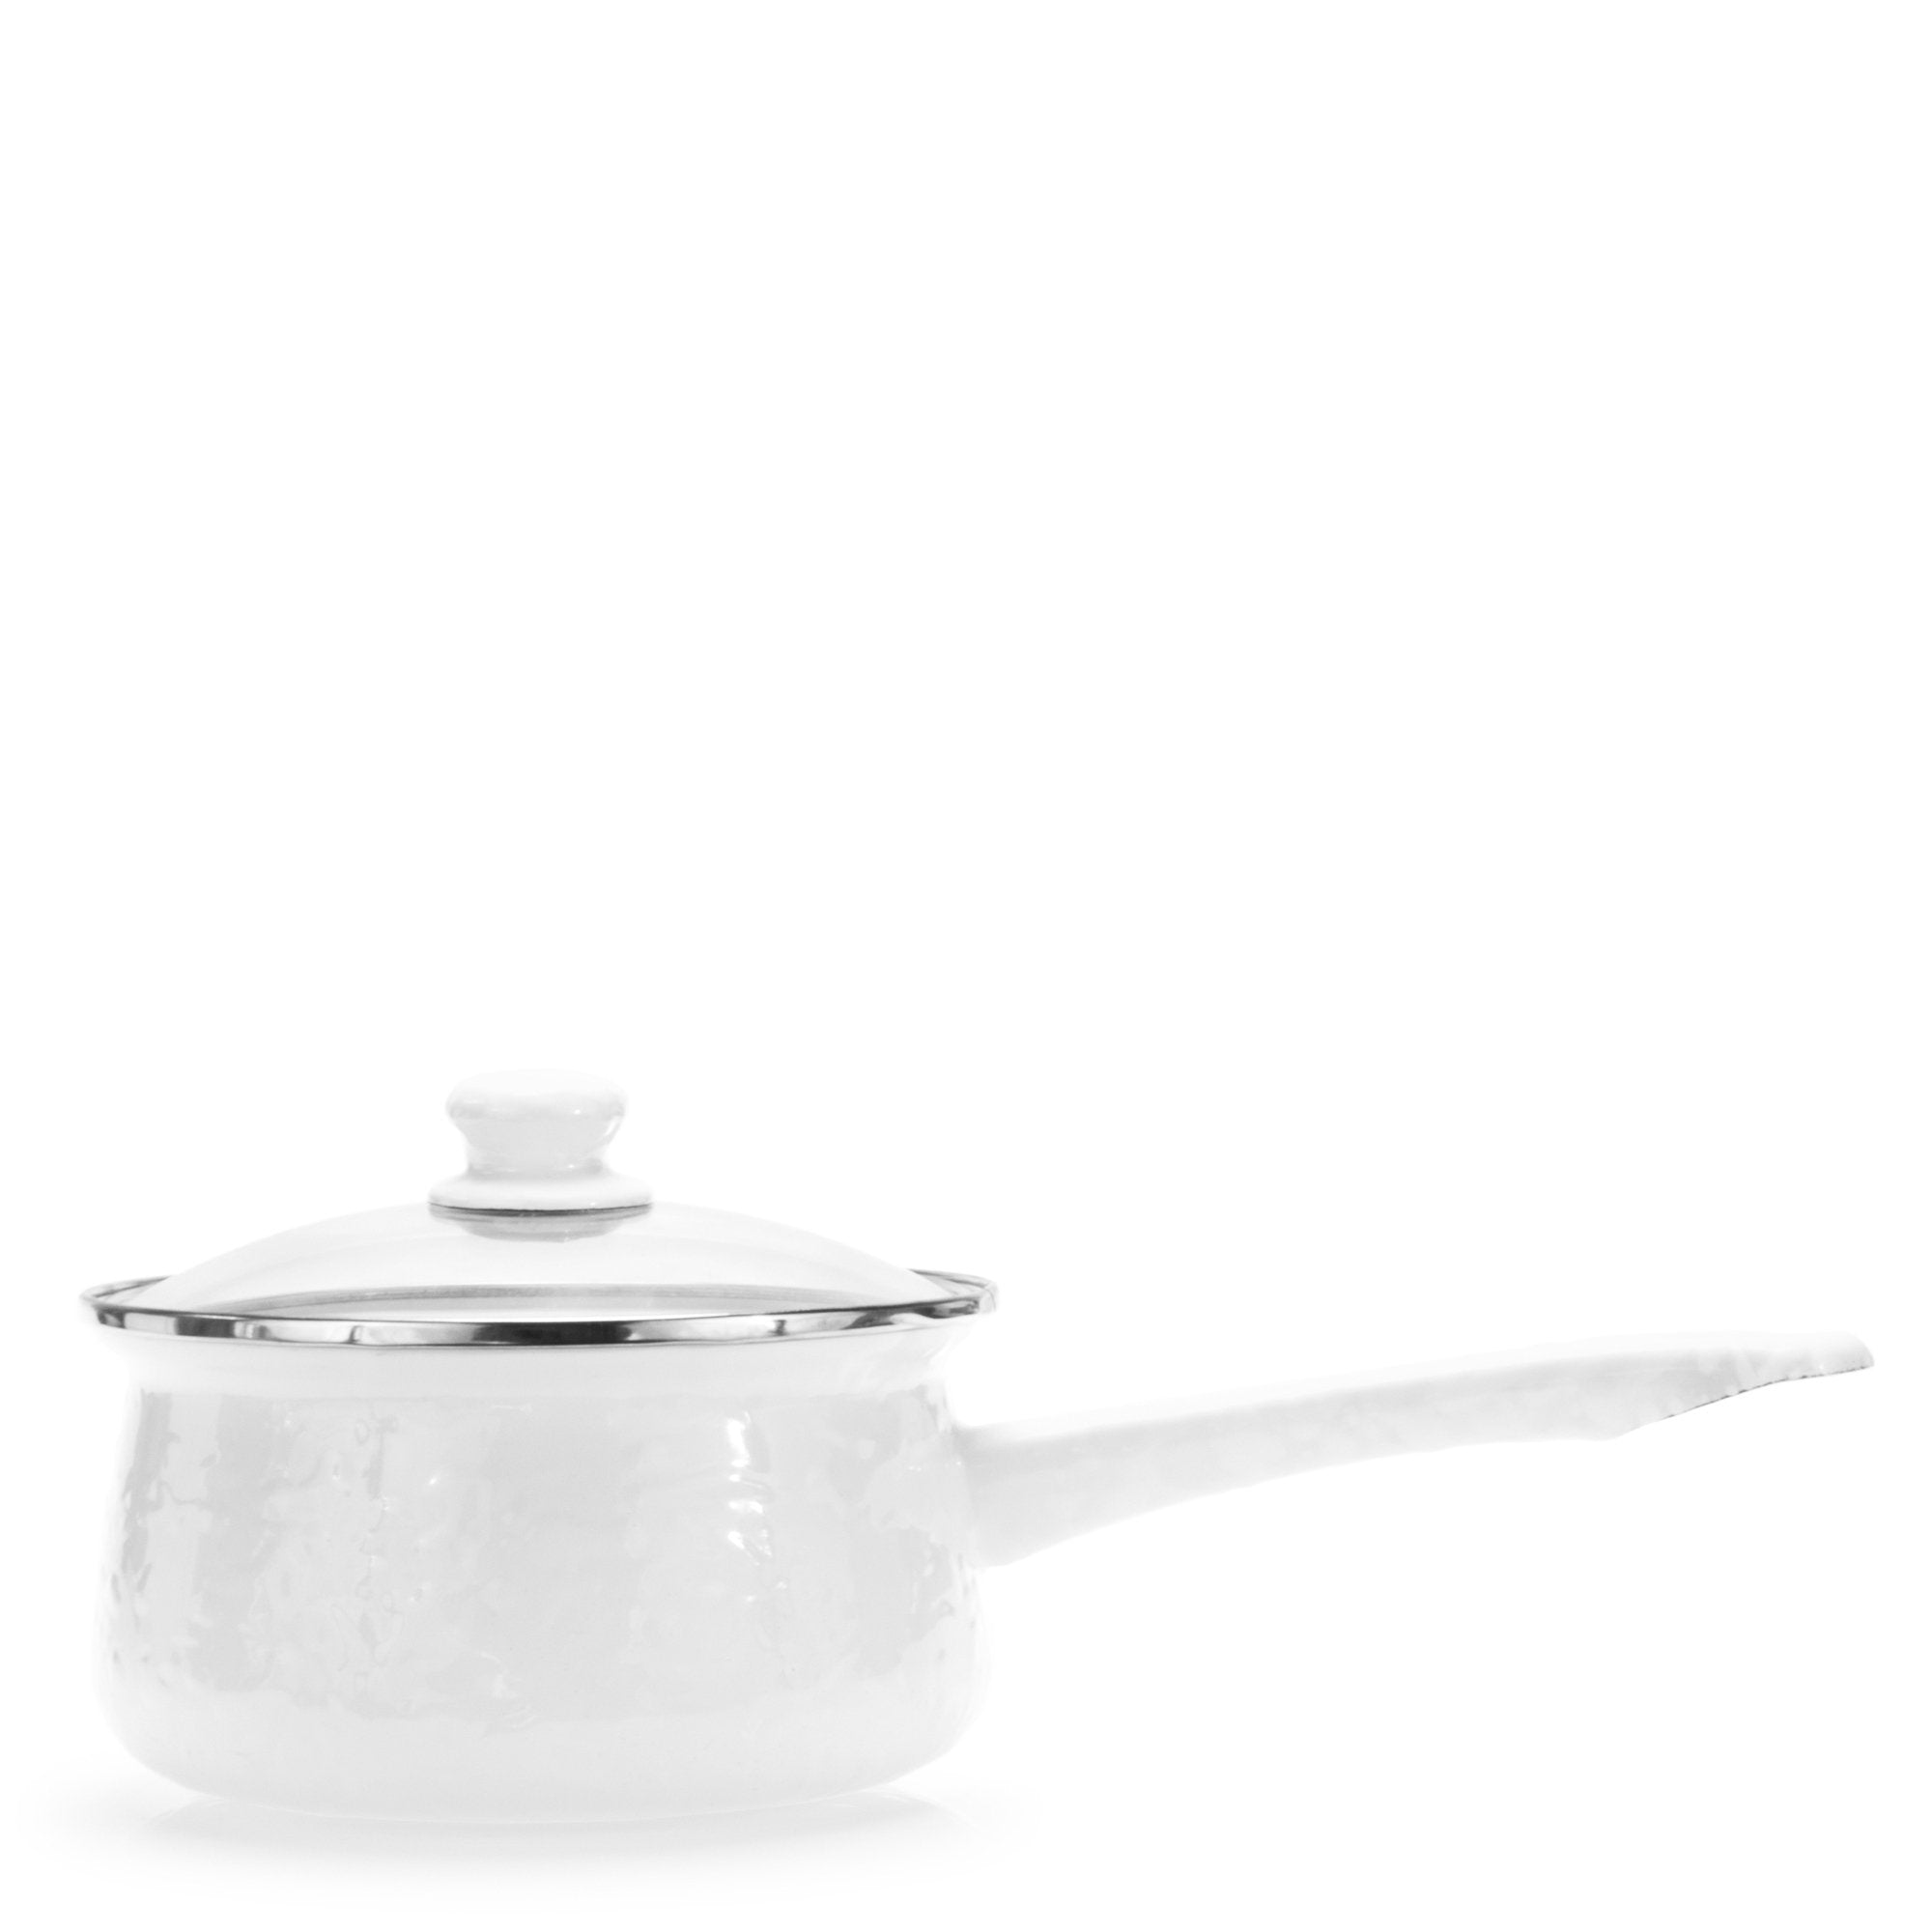 WW19 - Solid White - Enamelware - 5 Cup Sauce Pan by Golden Rabbit